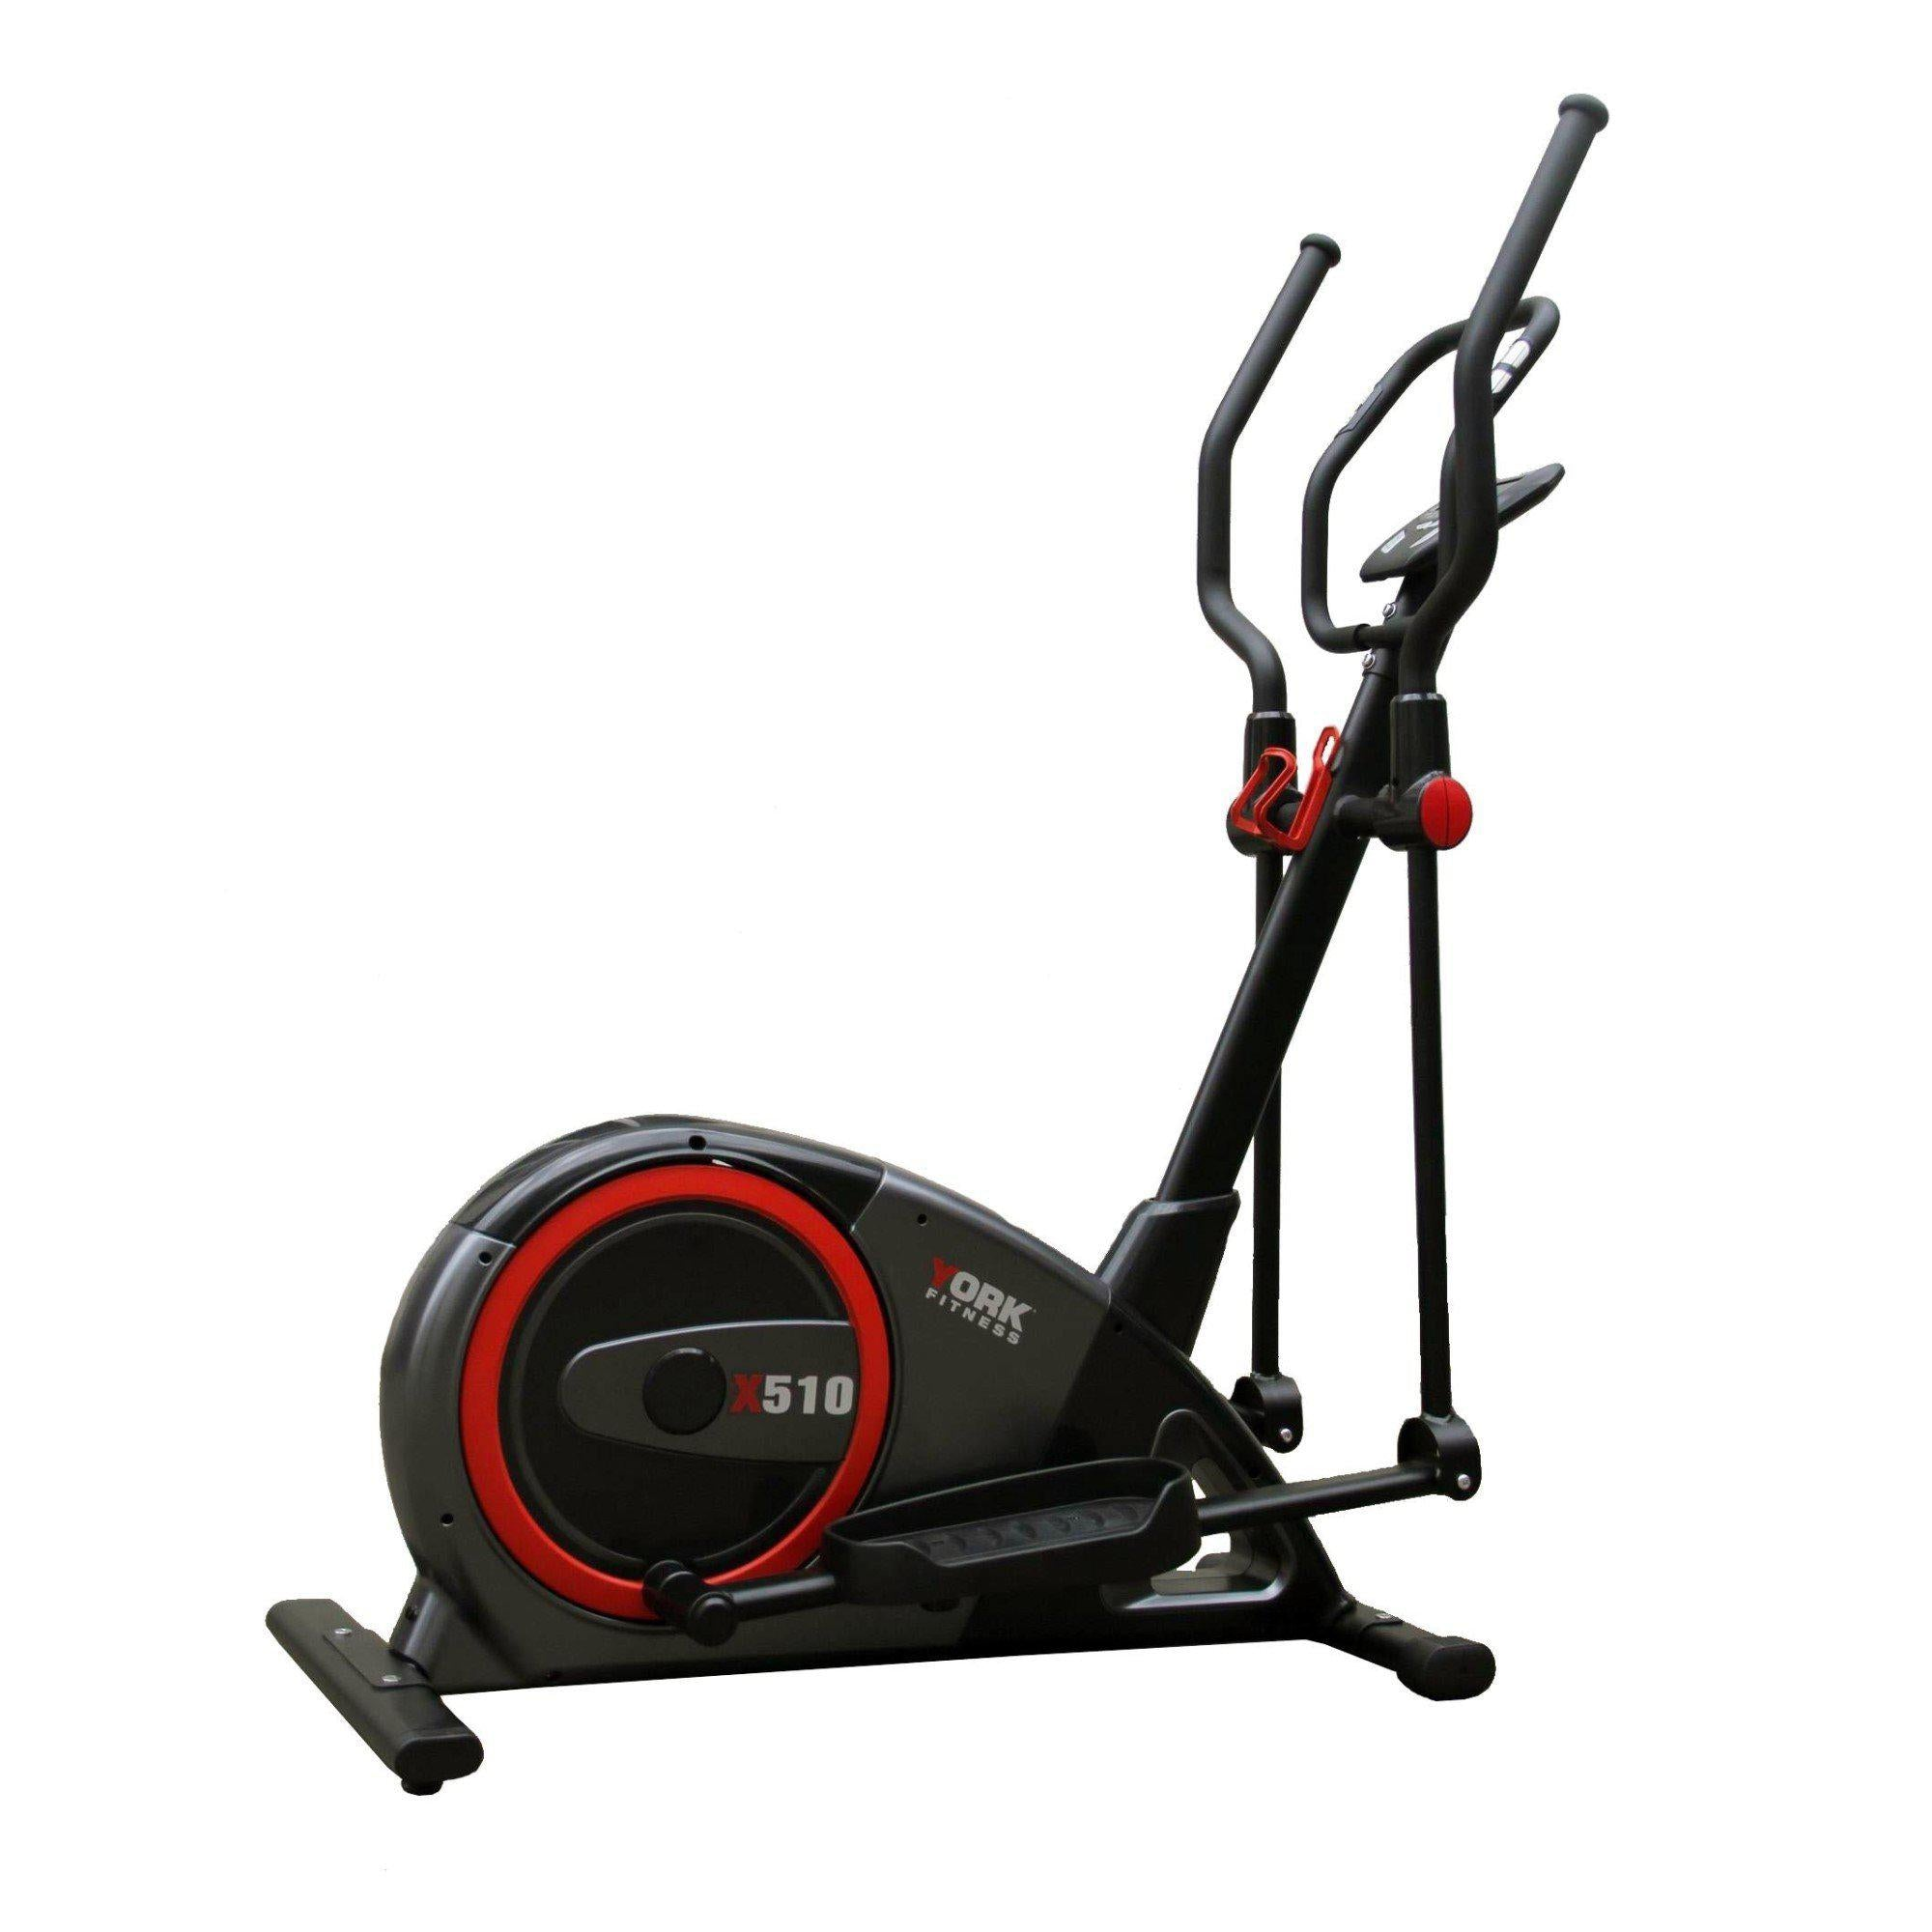 York X510 Cross Trainer